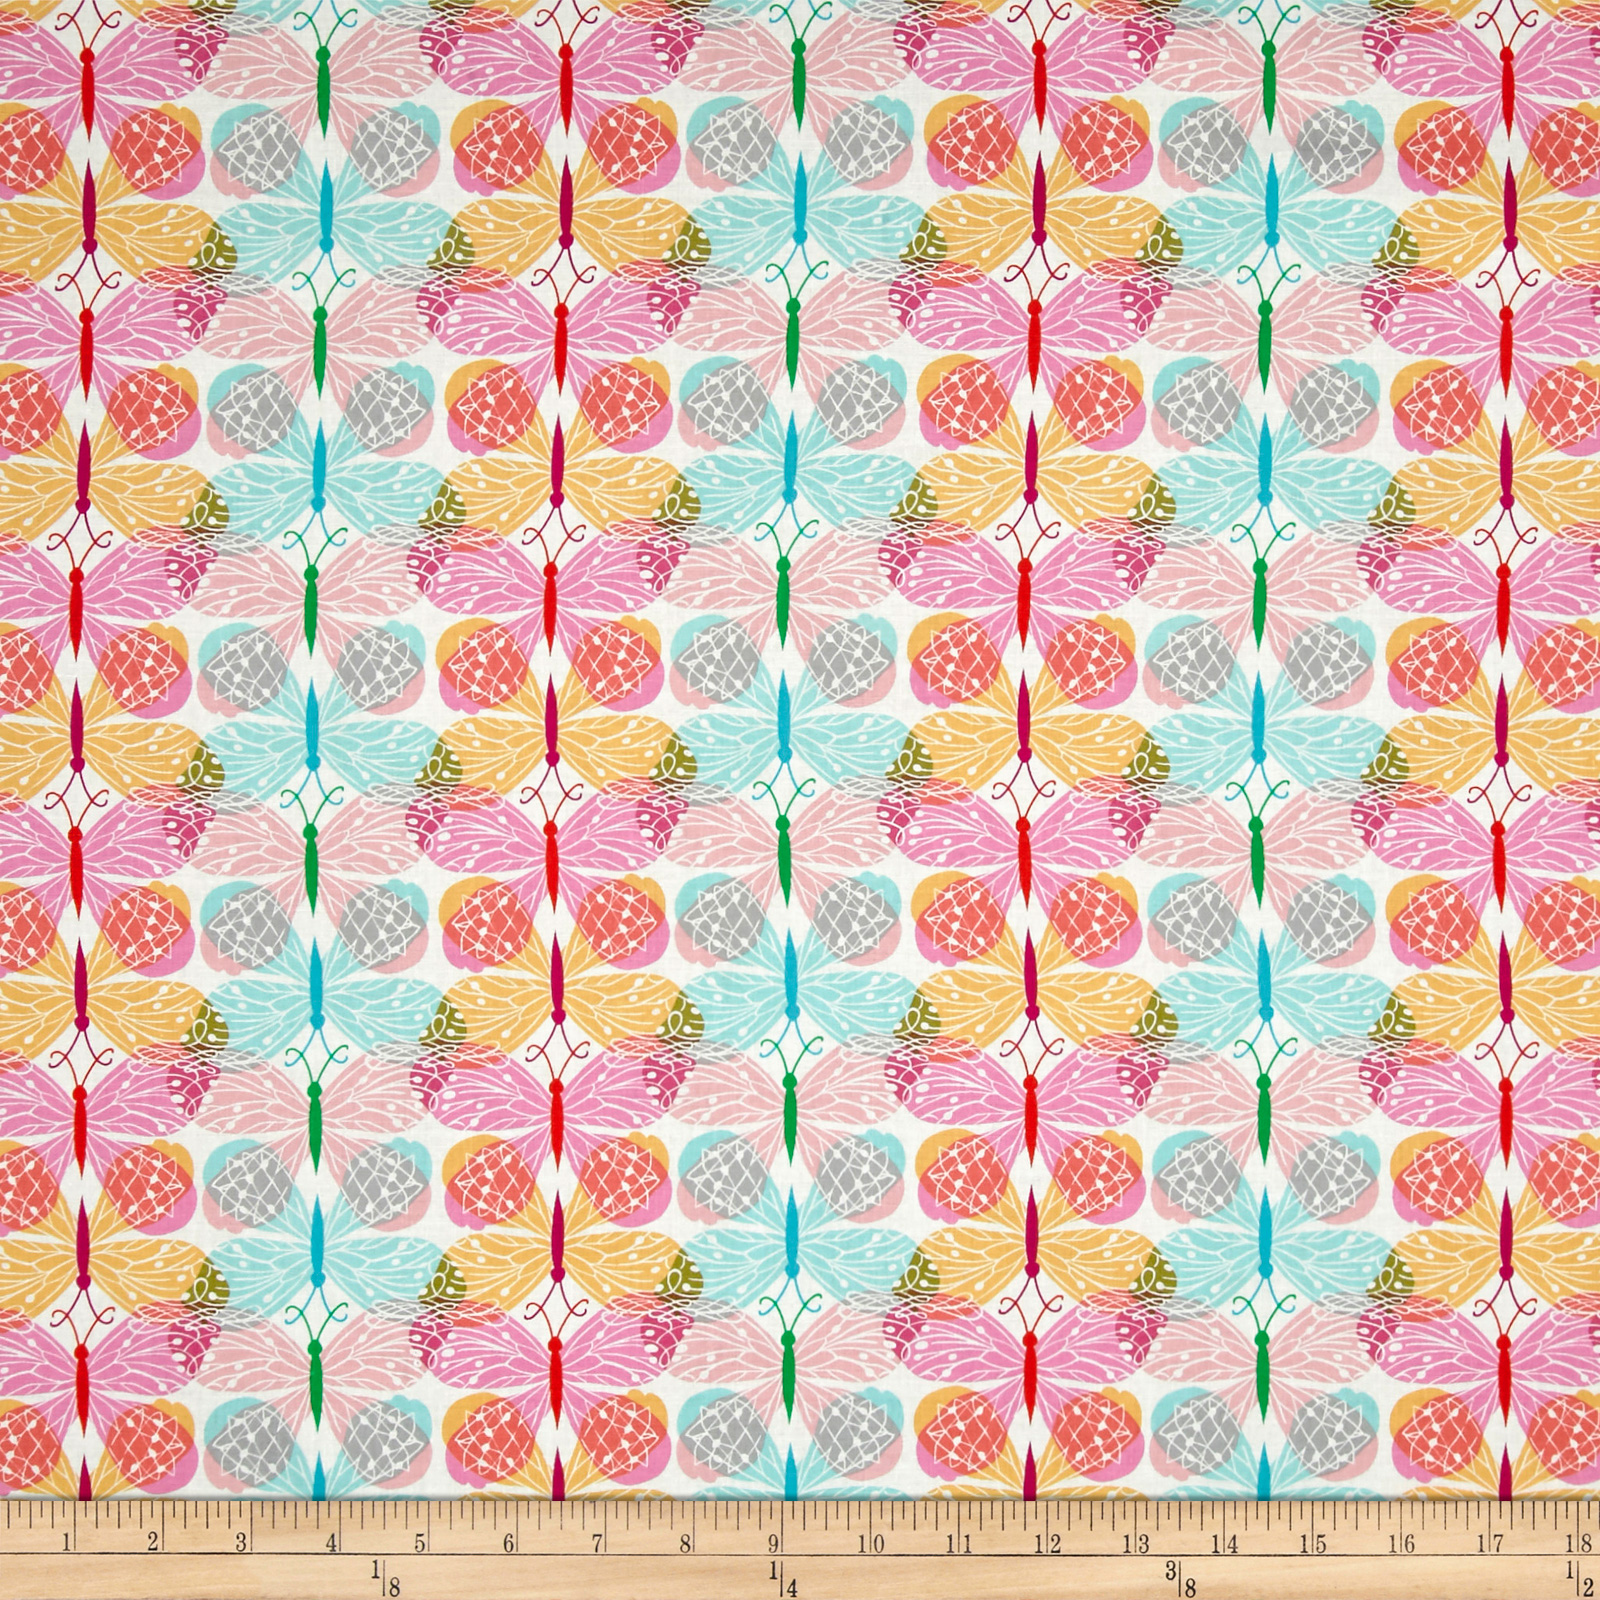 Image of Cotton + Steel Beauty Shop Good Luck Pink Fabric